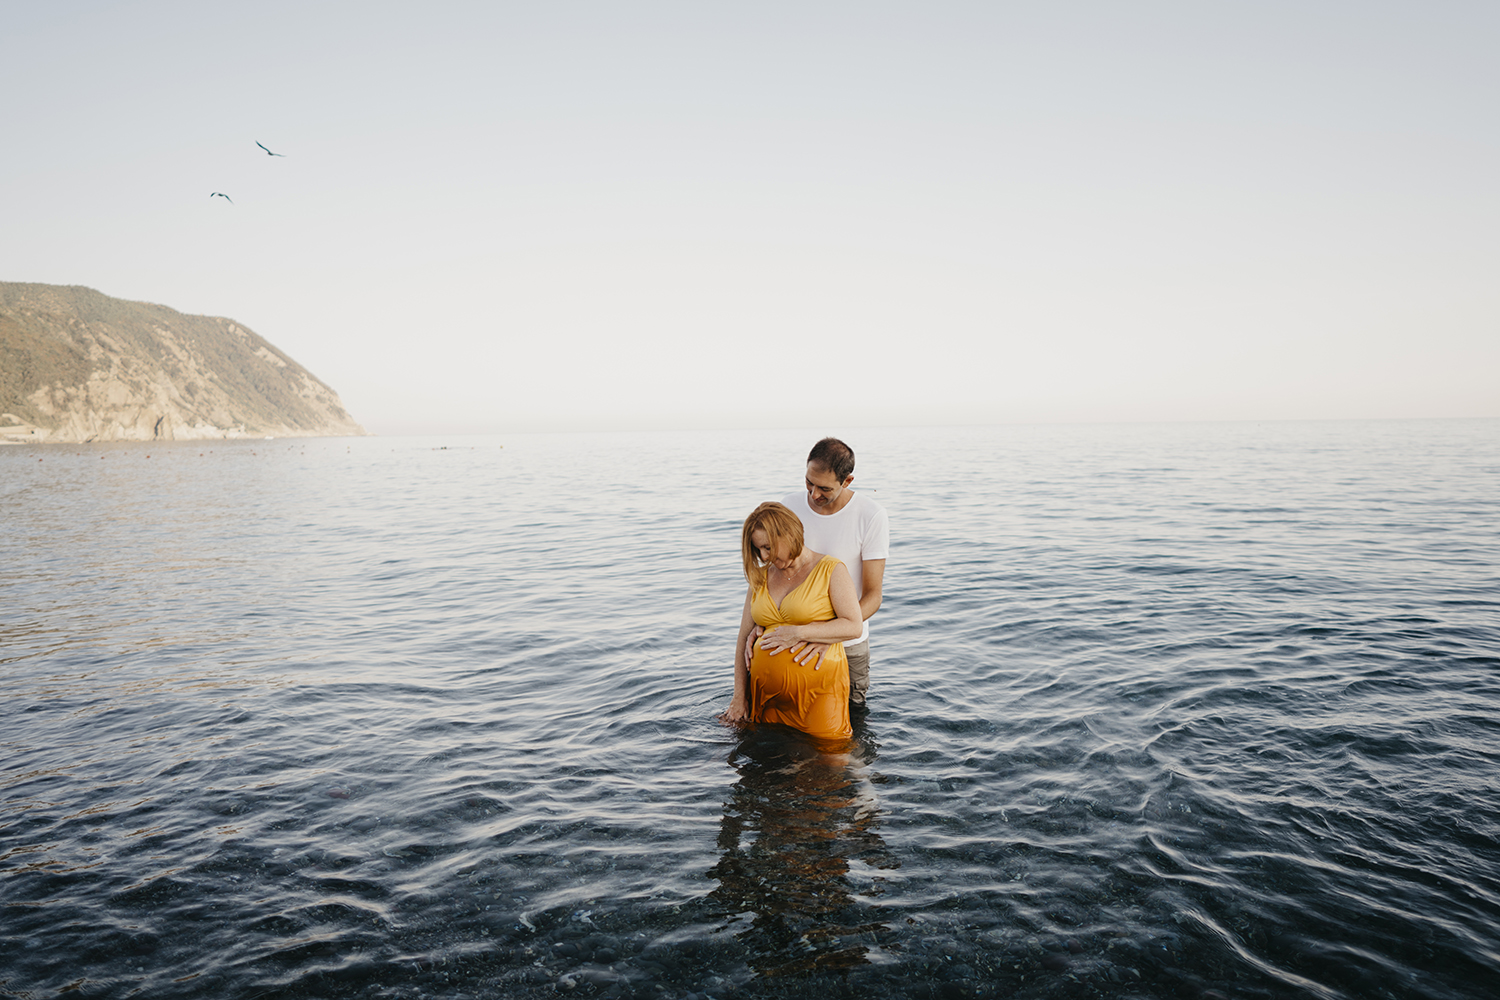 Maternity photographer in Deiva Marina, Italy. Mom coming out of the water. Rebecca Rinaldi Photography. Family lifestyle photographer in Italy.